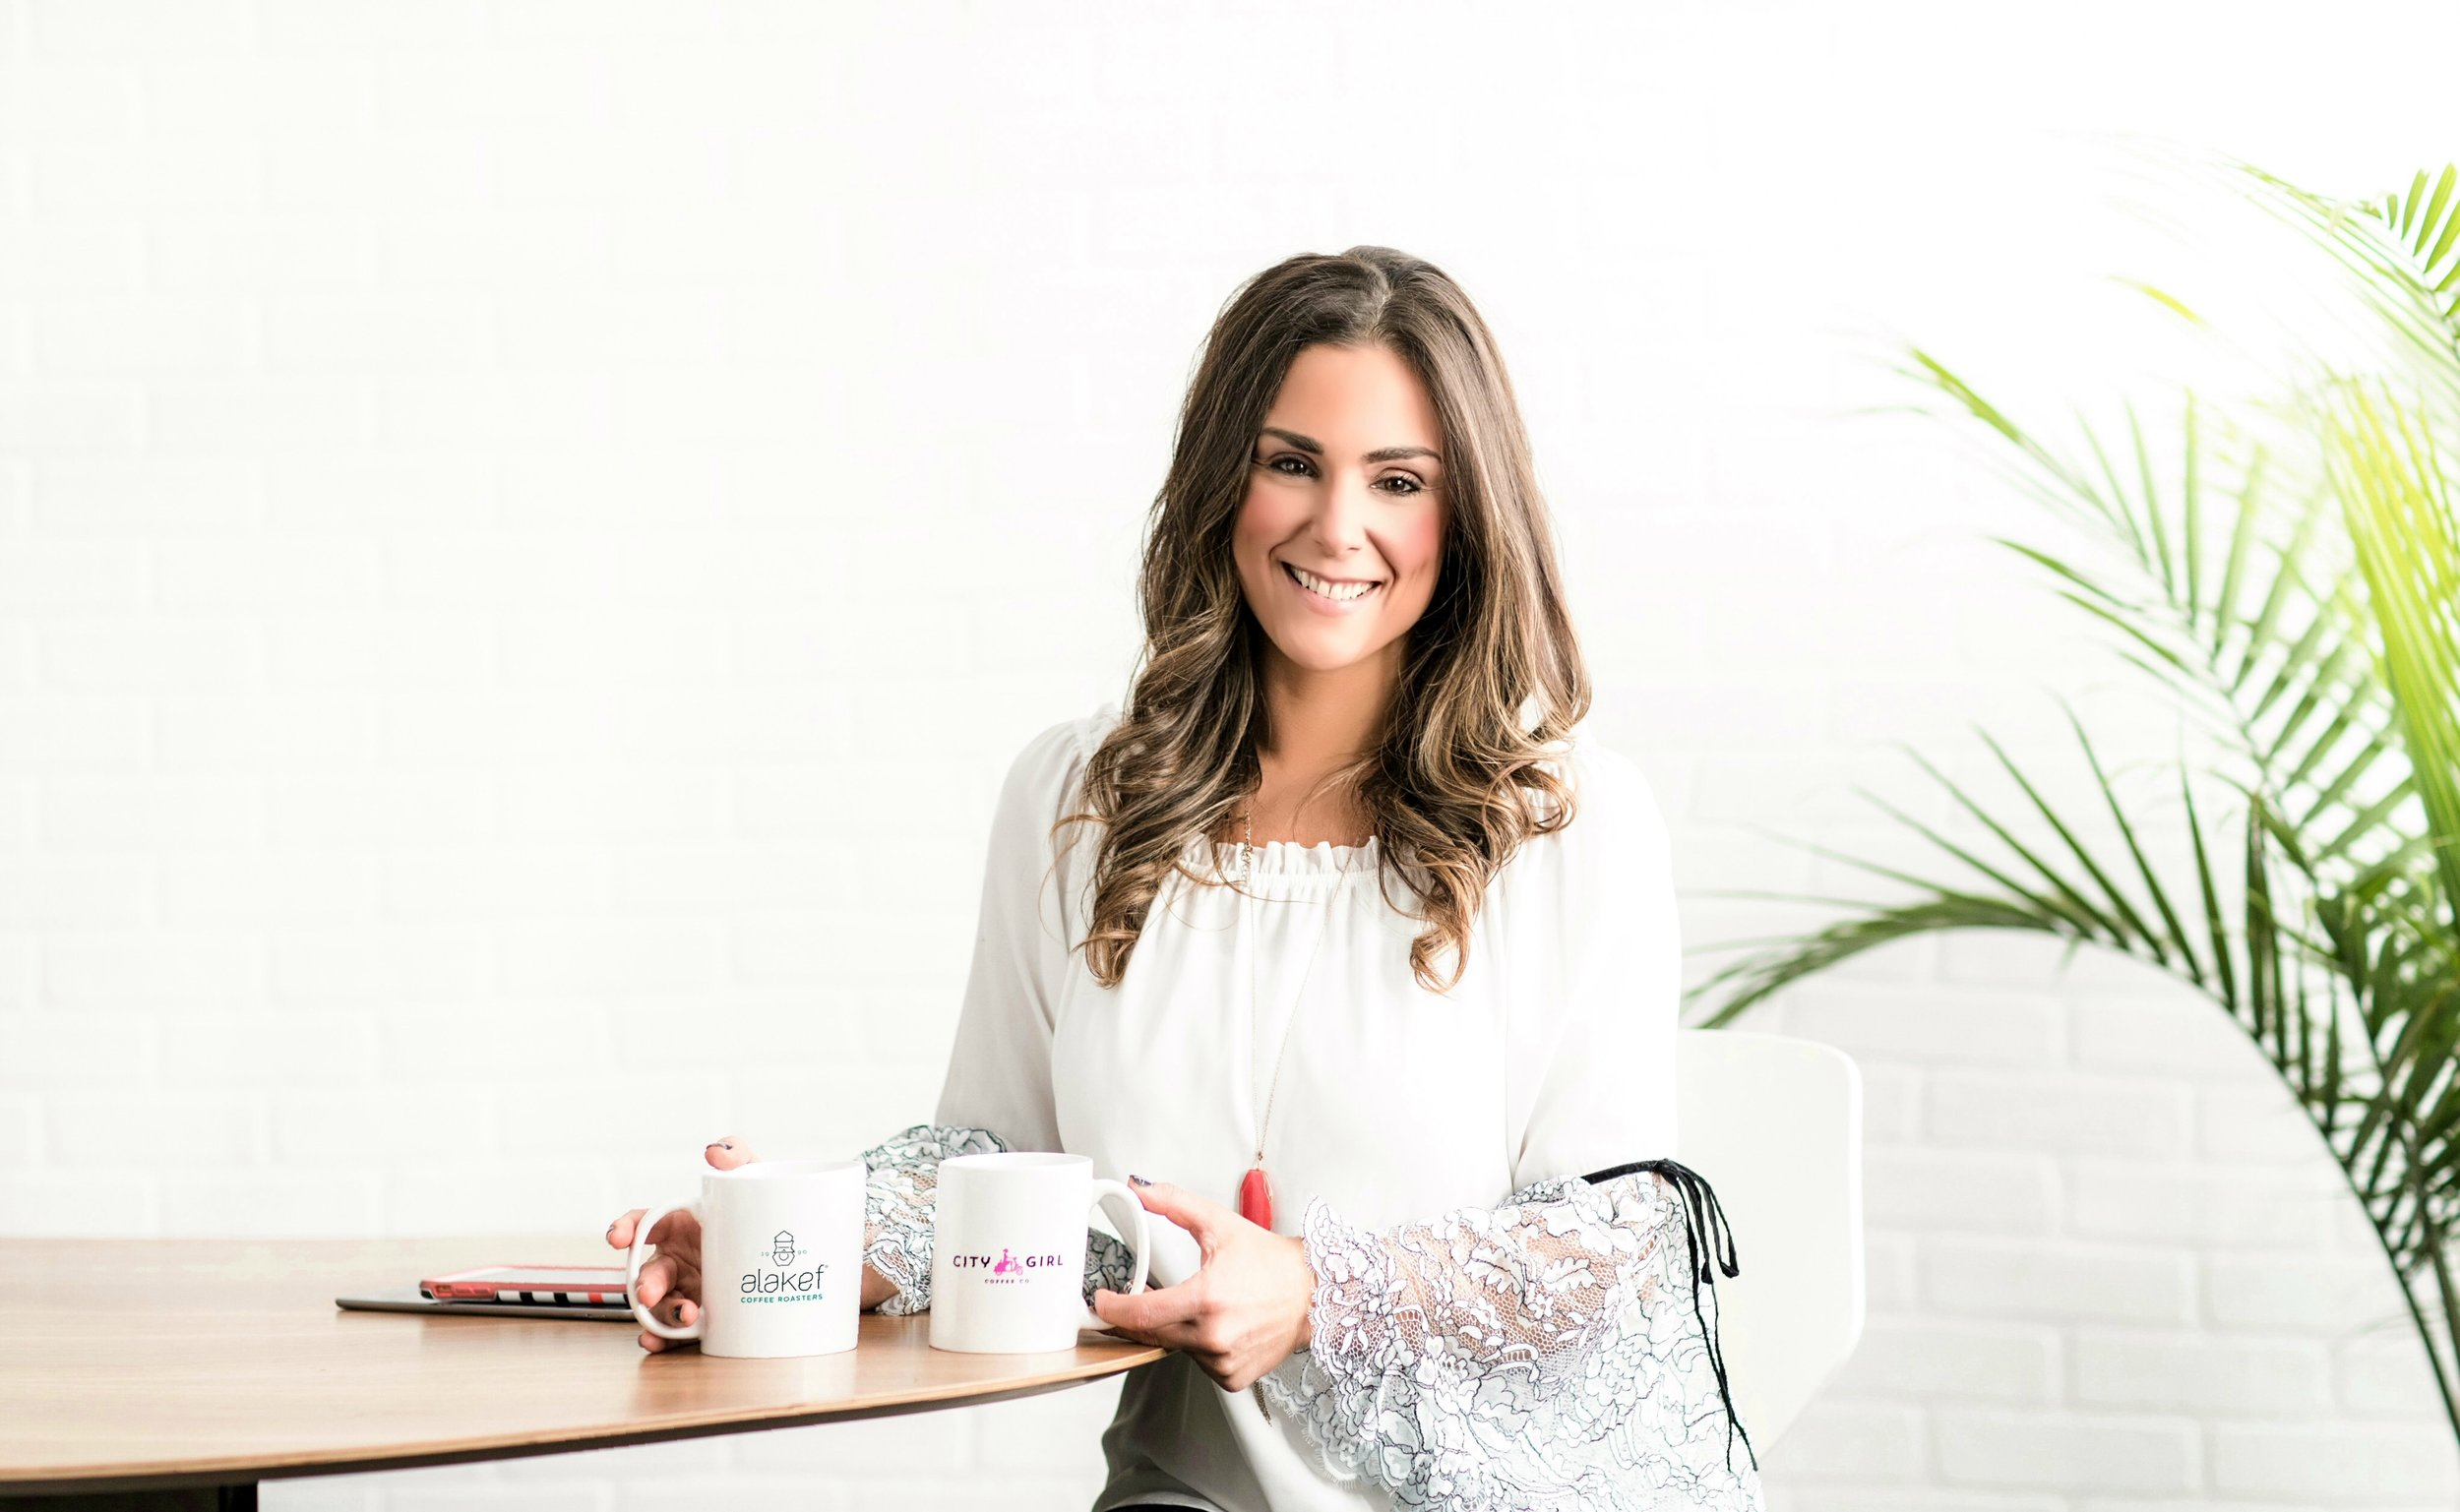 Alyza Bohbot runs Alakef Coffee Roasters and City Girl Coffee out of Duluth, Minnesota.Fresh Coast Collective